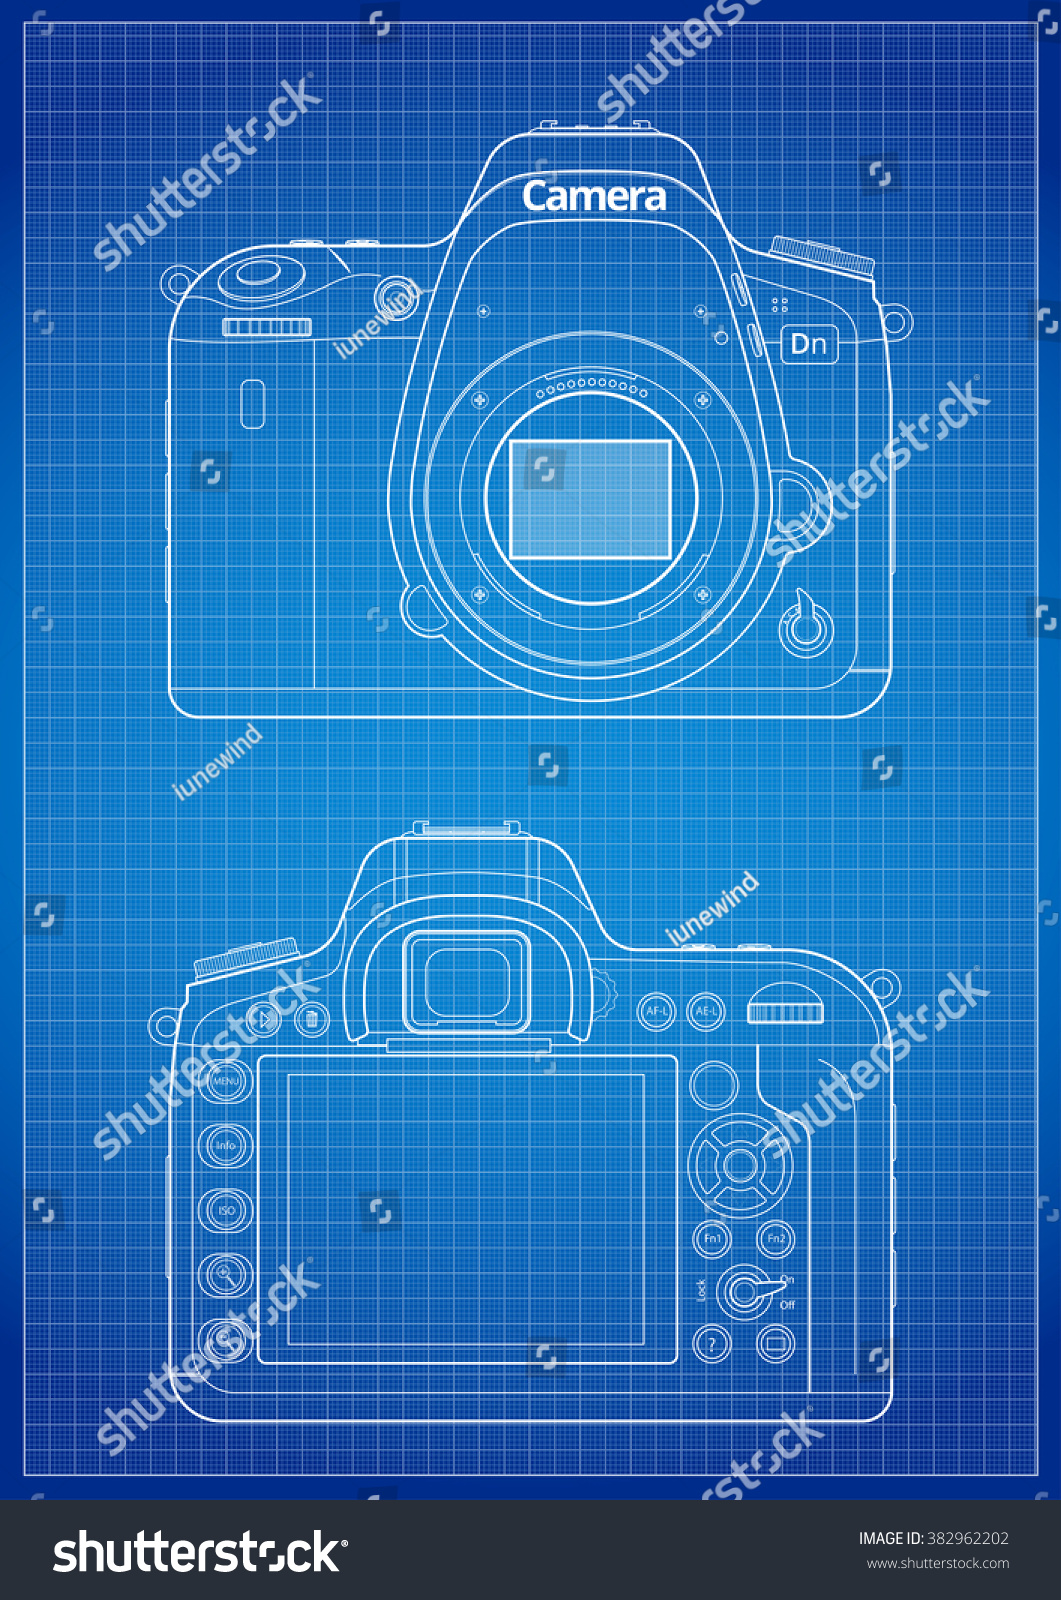 Front back matrix open bayonet slr stock vector 382962202 front back and matrix with open bayonet of slr camera blueprint lines with grid malvernweather Gallery